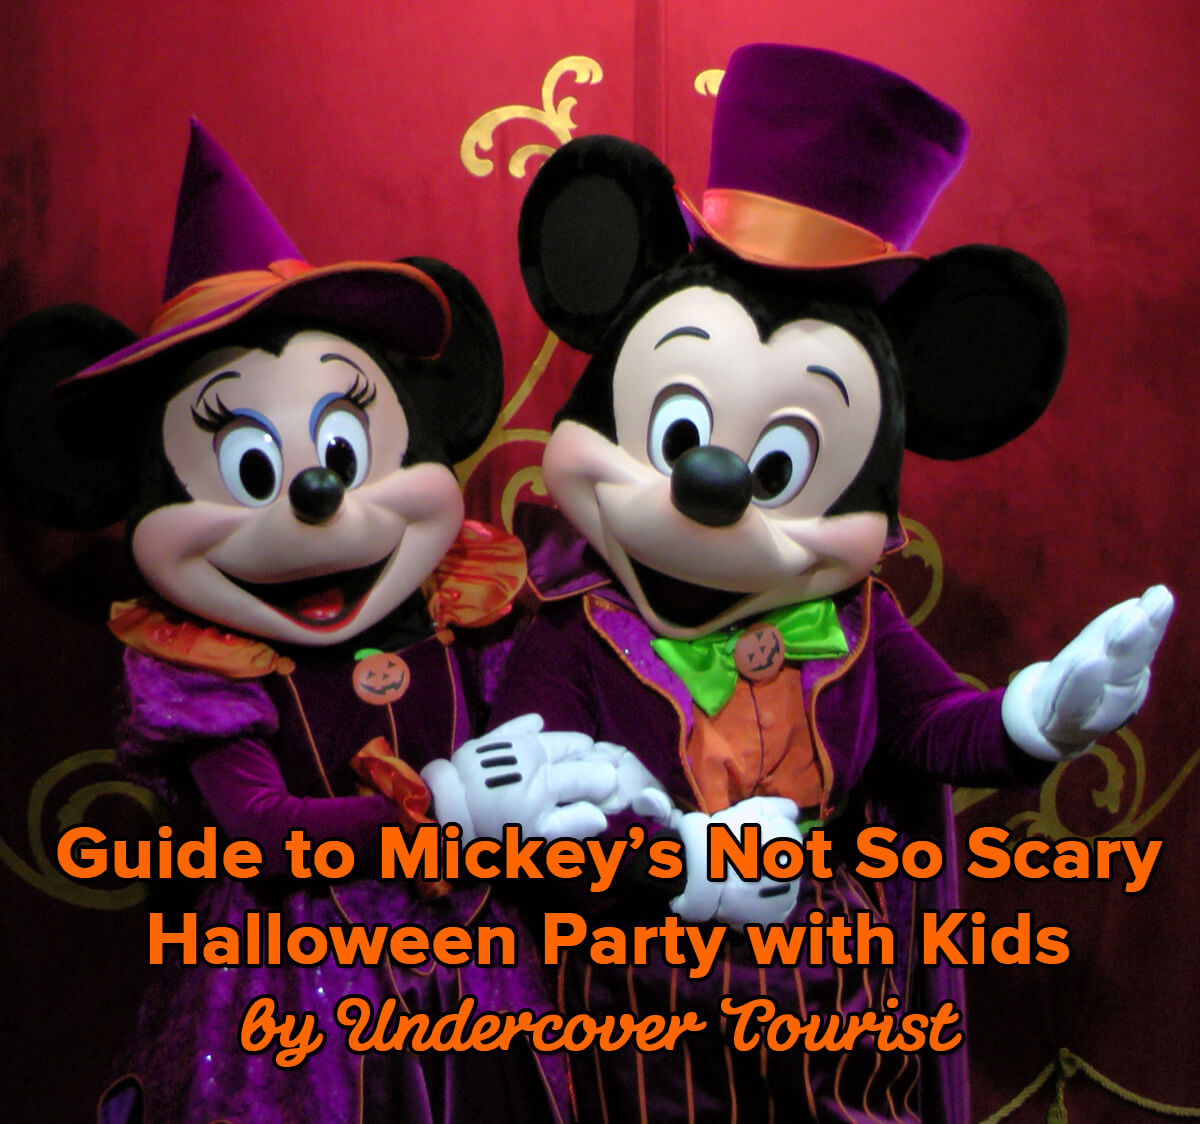 Guide to Mickey's Not So Scary Halloween Party 2018 - Disney Halloween Party